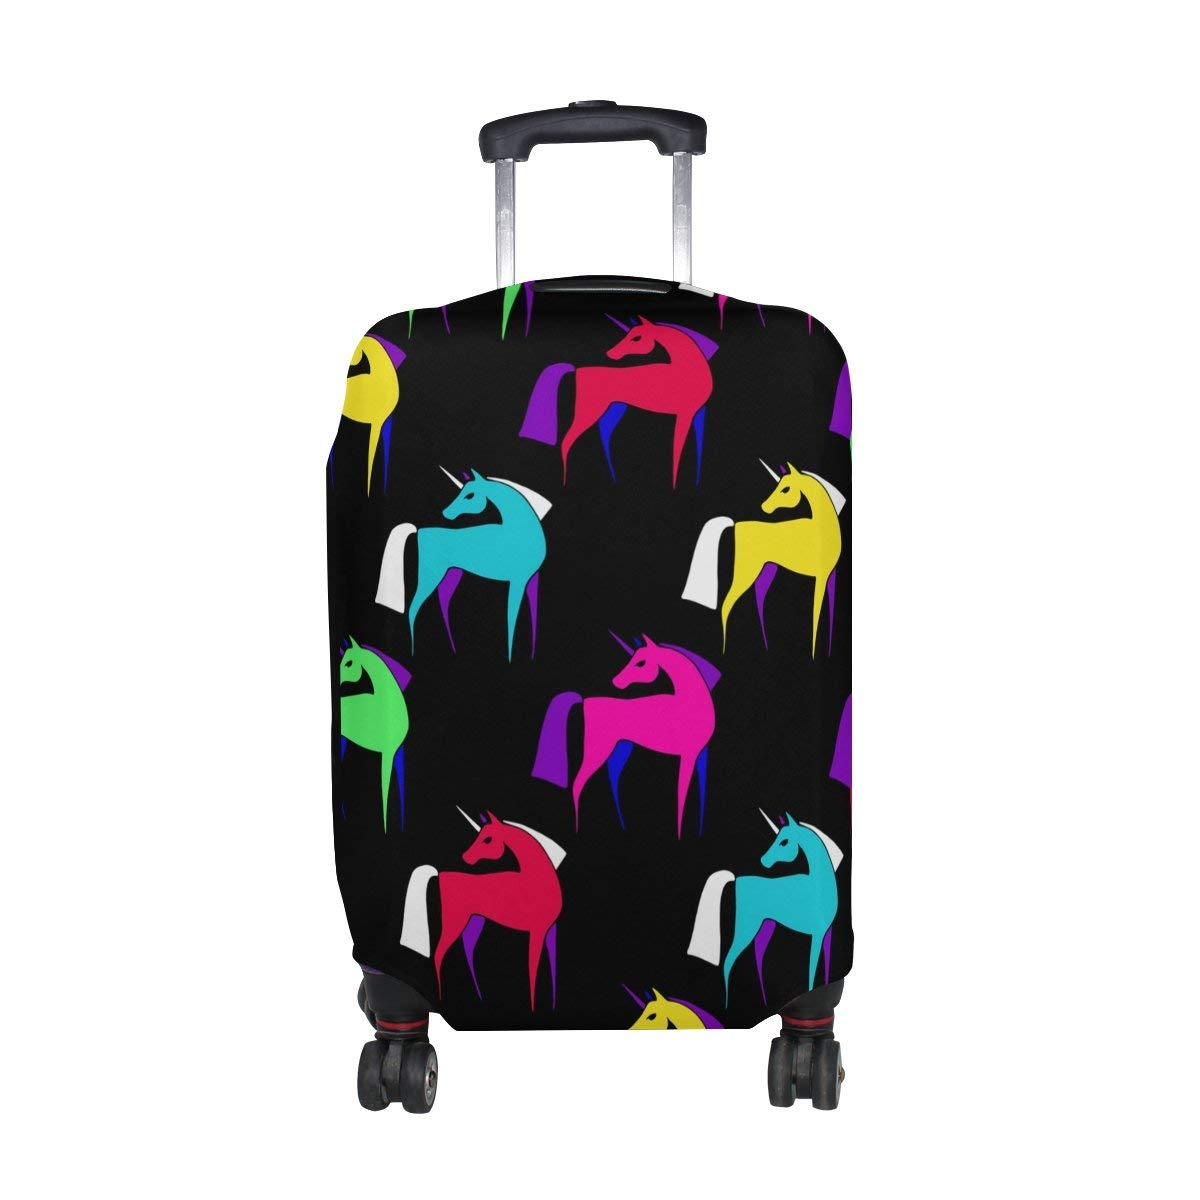 8607693a7 Get Quotations · ALAZA Different Koala Unicorn Animals Luggage Suitcase  Cover Case Protector